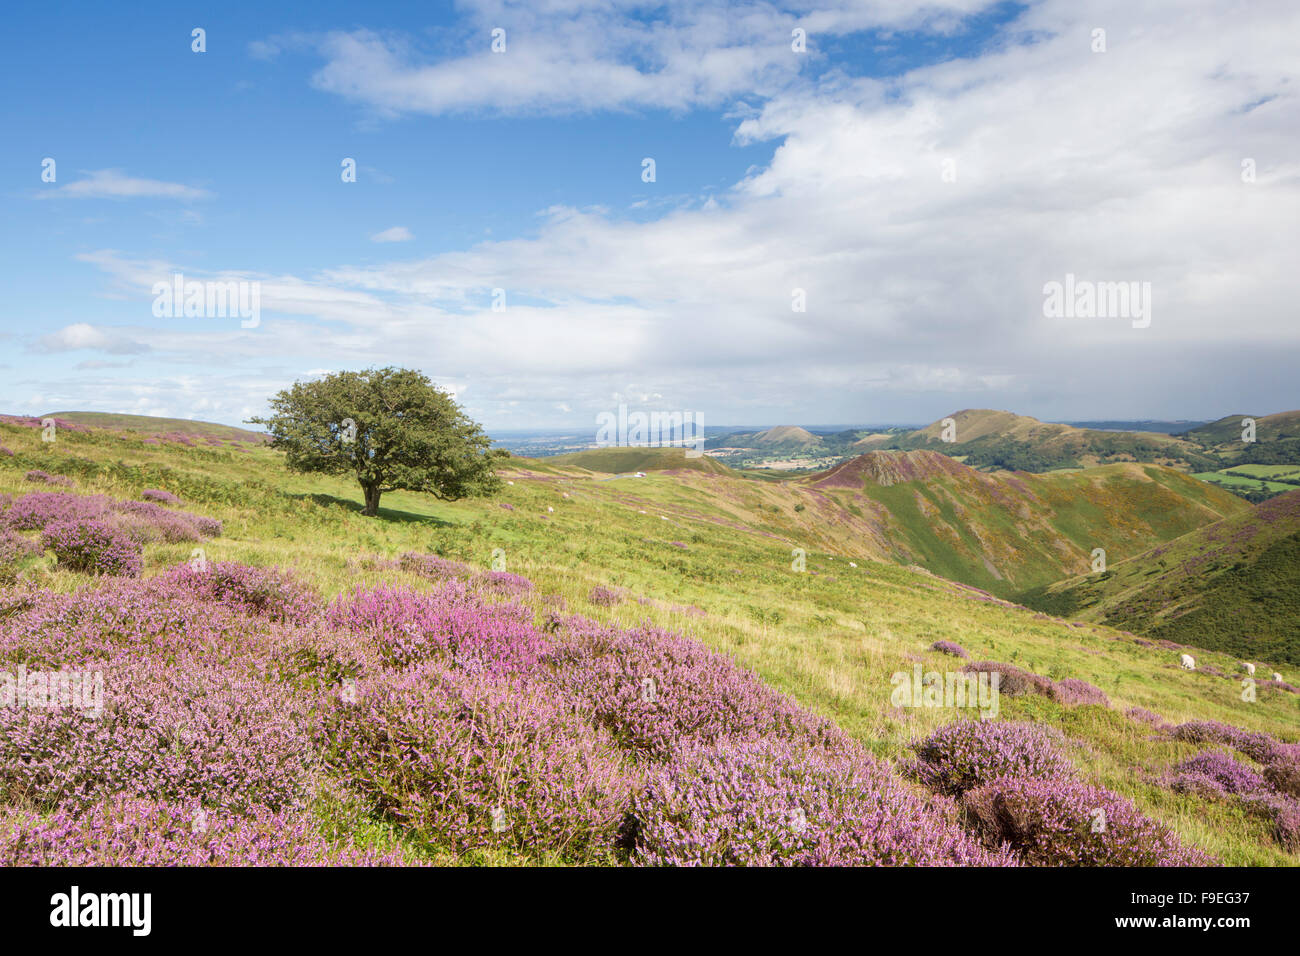 Looking across the Stretton Hills from the Long Mynd and the distant Caradoc Hill, Shropshire, England, UK - Stock Image